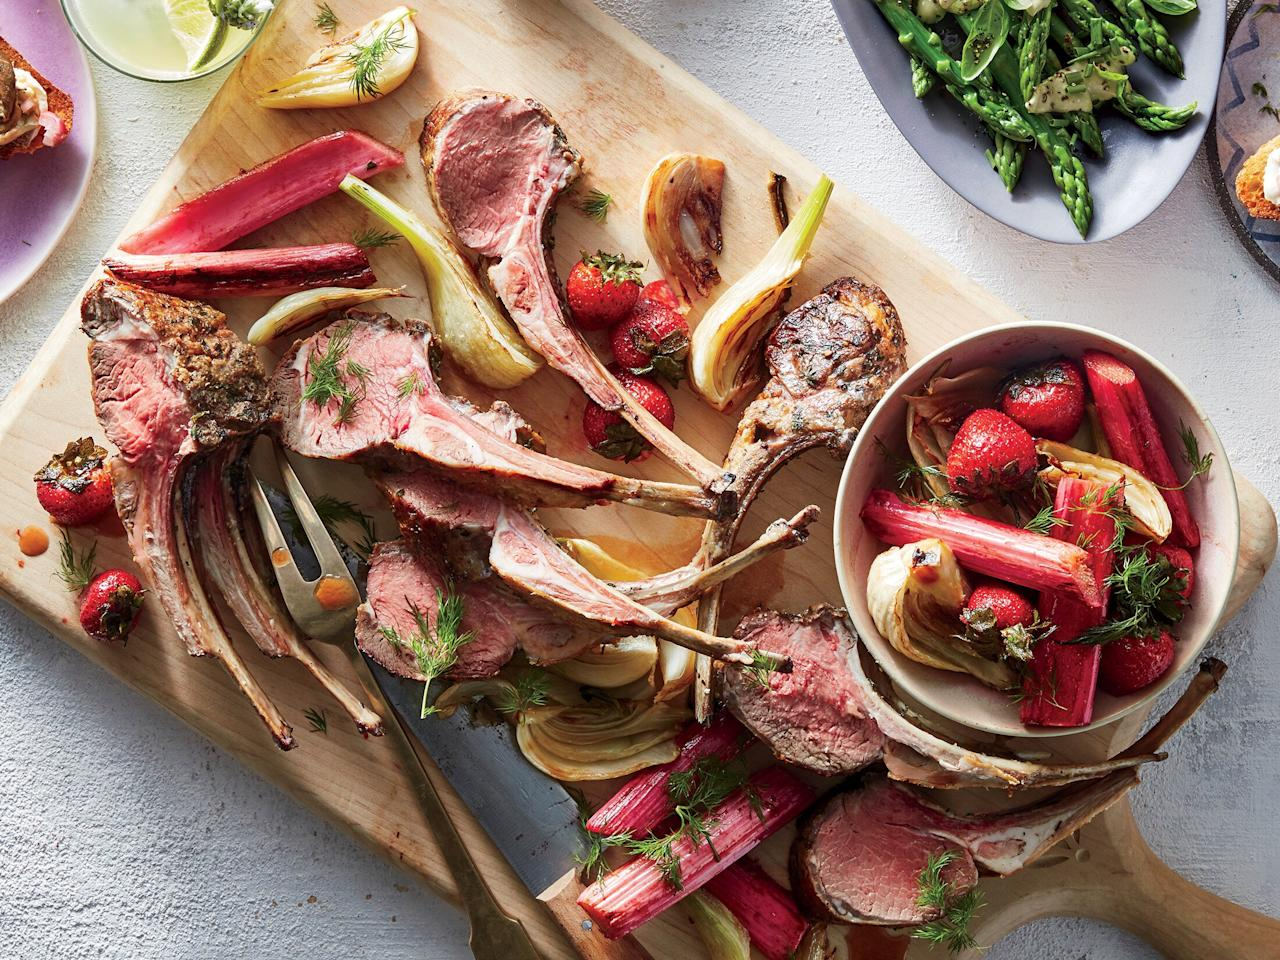 """<p>Lamb's pleasantly gamey flavor pairs beautifully with tart rhubarb, sweet strawberries, and anise-scented fennel. """"Frenched"""" racks of lamb are trimmed so that the bones are cleaned of fat and meat; if you can't find pre-frenched lamb racks, ask your butcher to french them for you. Look for big stalks of rhubarb at the market; they'll hold their shape better than smaller ones, which can easily get too soft when cooked.</p> <p><a href=""""https://www.myrecipes.com/recipe/roasted-spring-lamb-with-fennel-rhubarb-and-strawberries"""">Roasted Spring Lamb With Fennel, Rhubarb, and Strawberries Recipe</a></p>"""